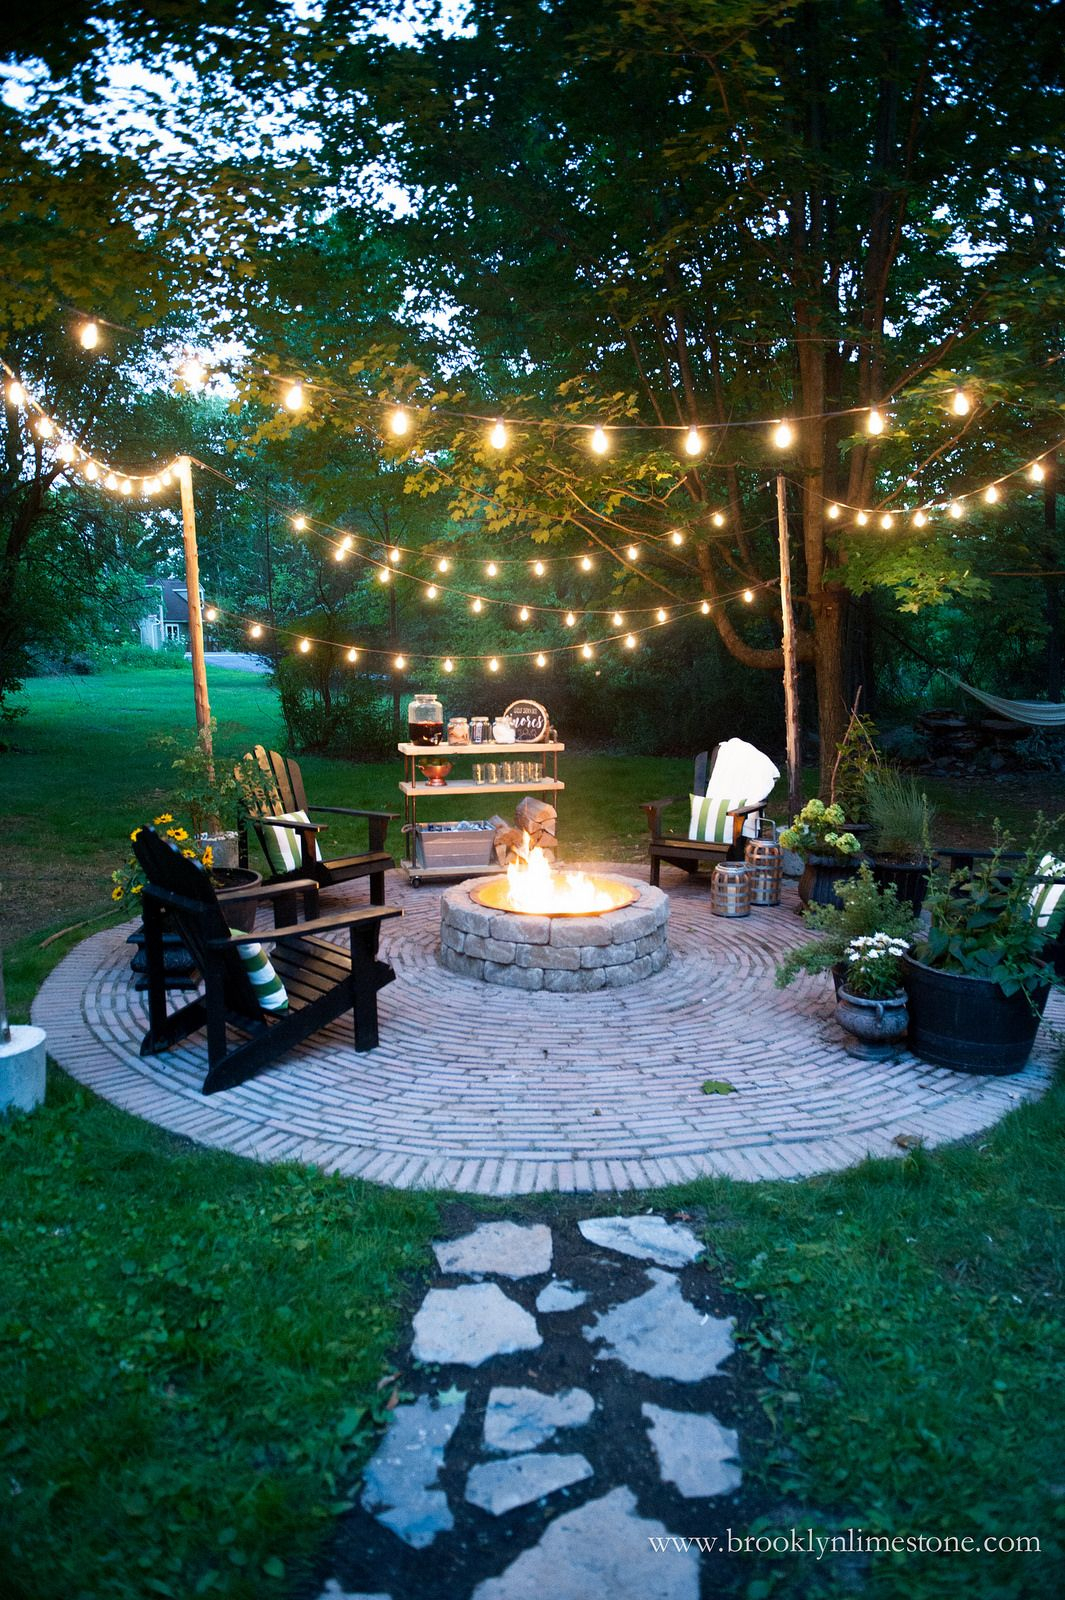 18 Fire Pit Ideas For Your Backyard Home Decor Ideas Backyard for 11 Some of the Coolest Ways How to Makeover Decorating Backyard